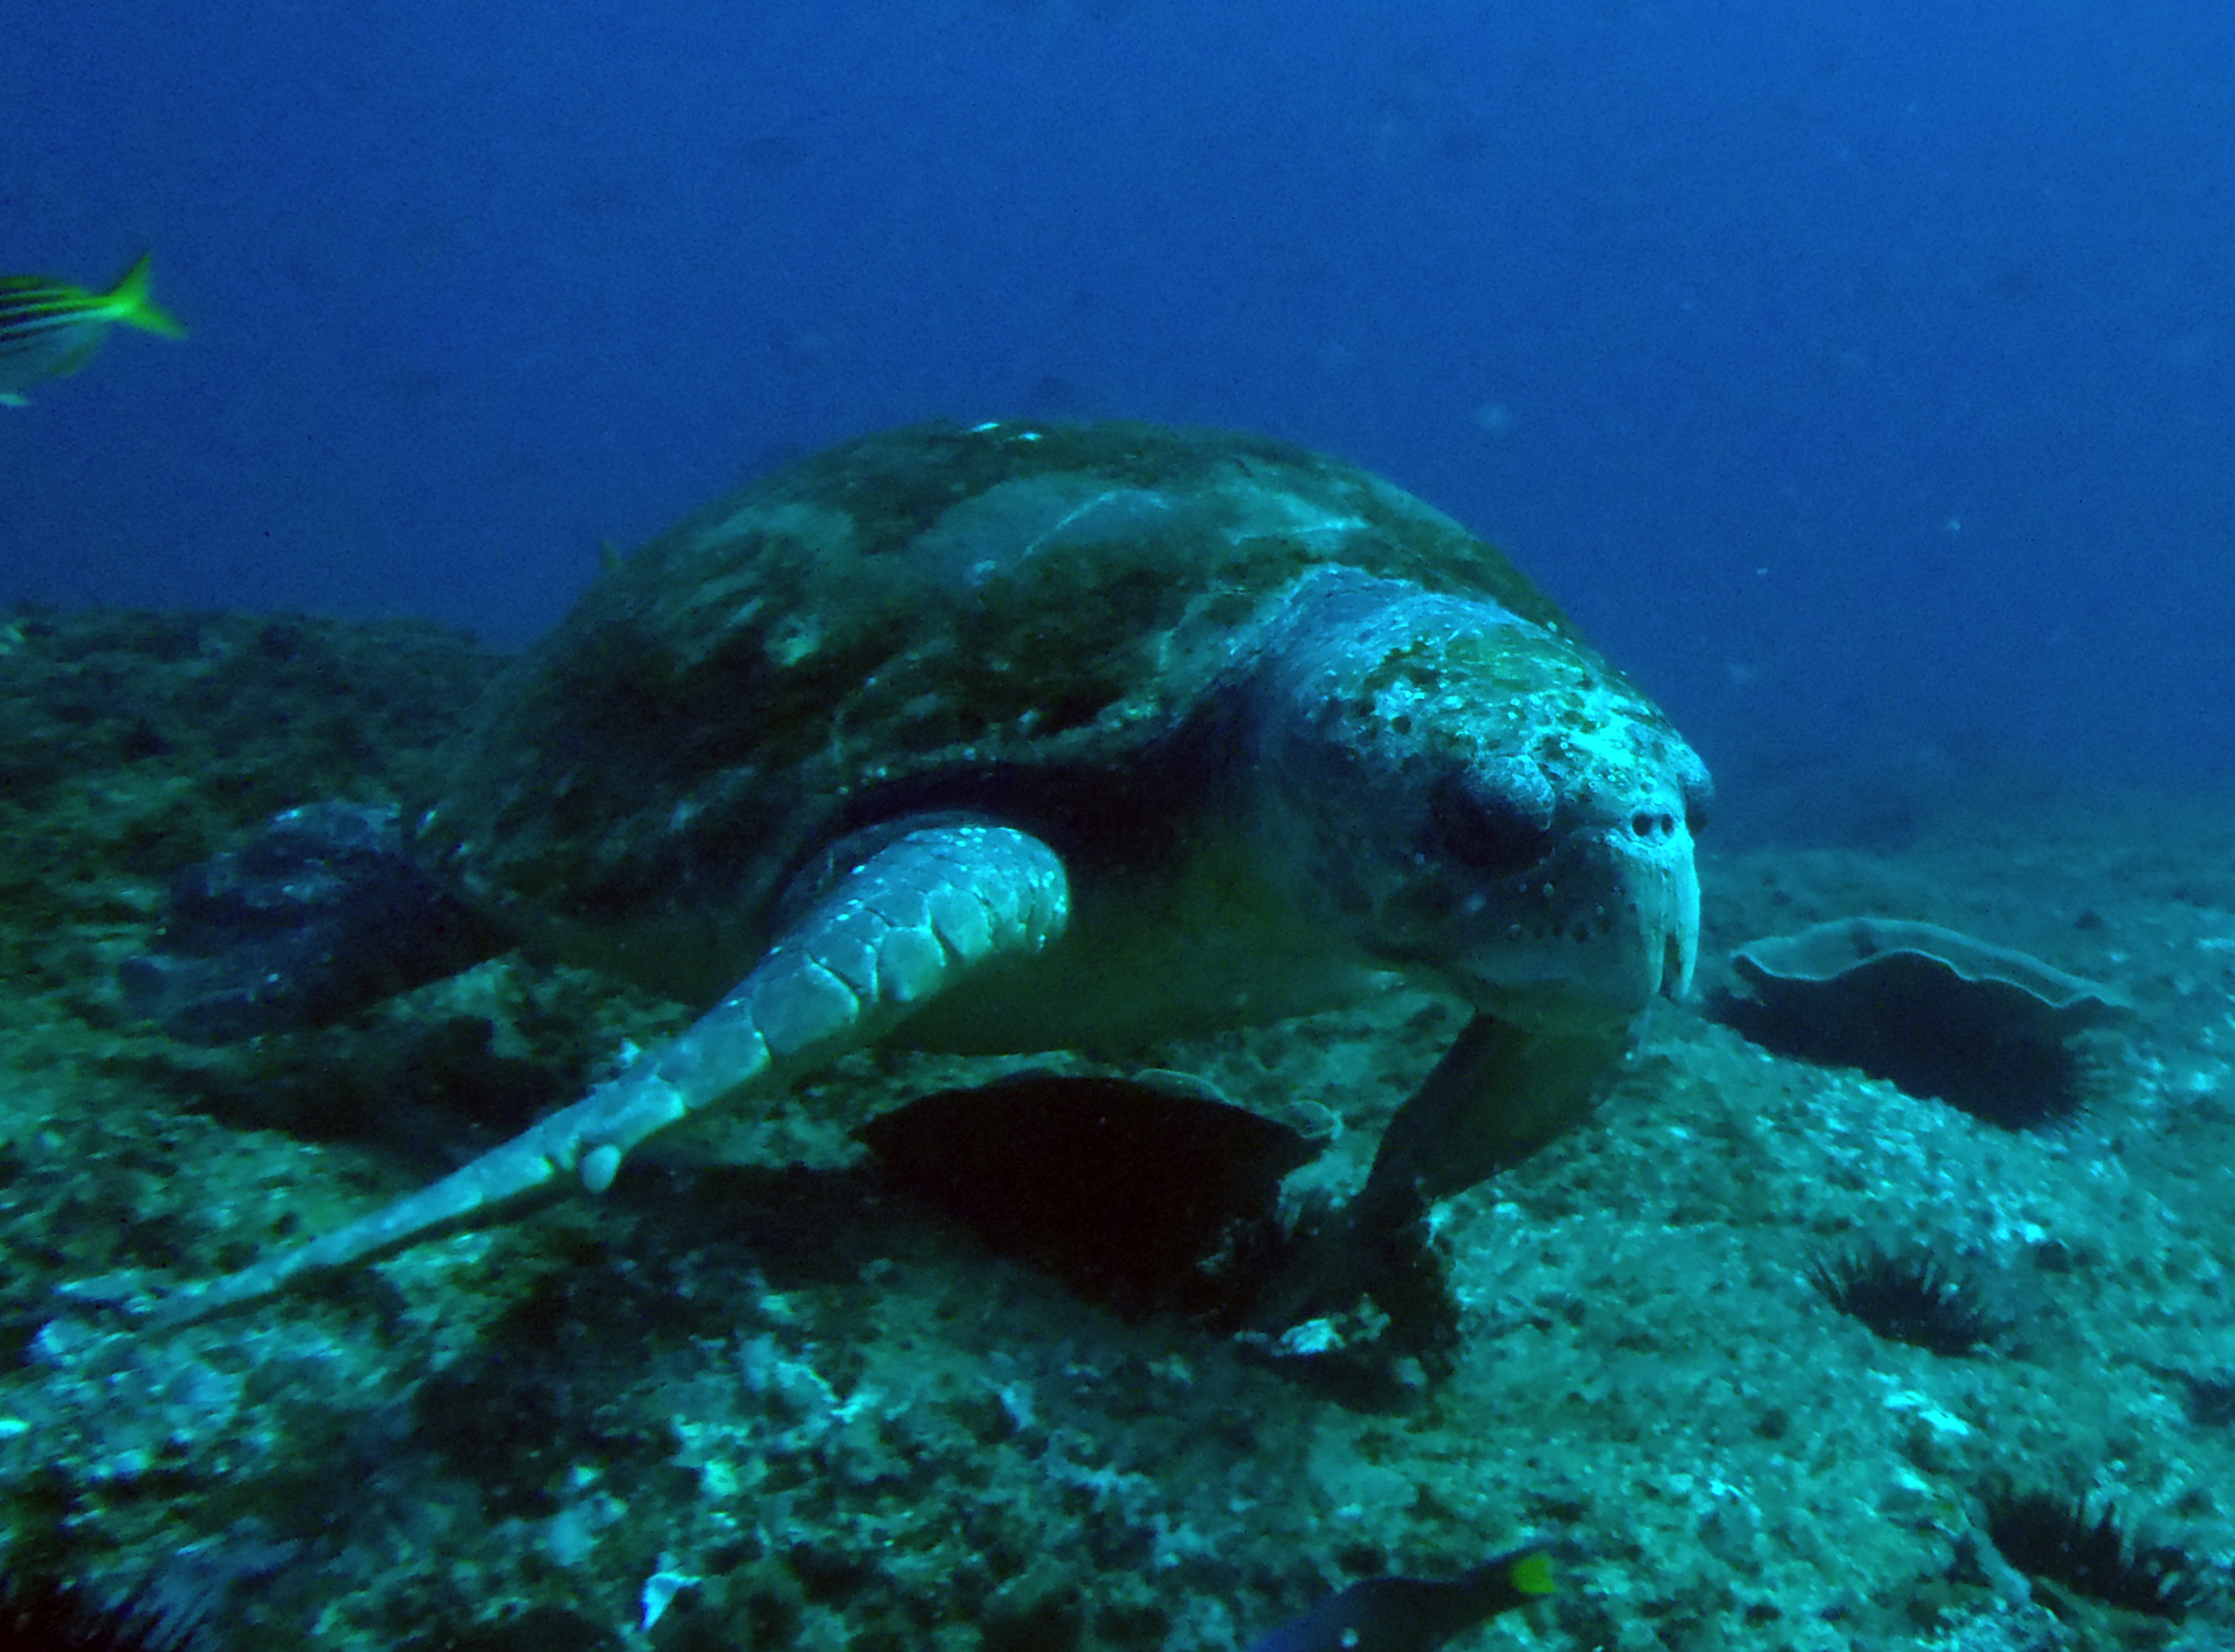 Barney the Loggerhead Turtle